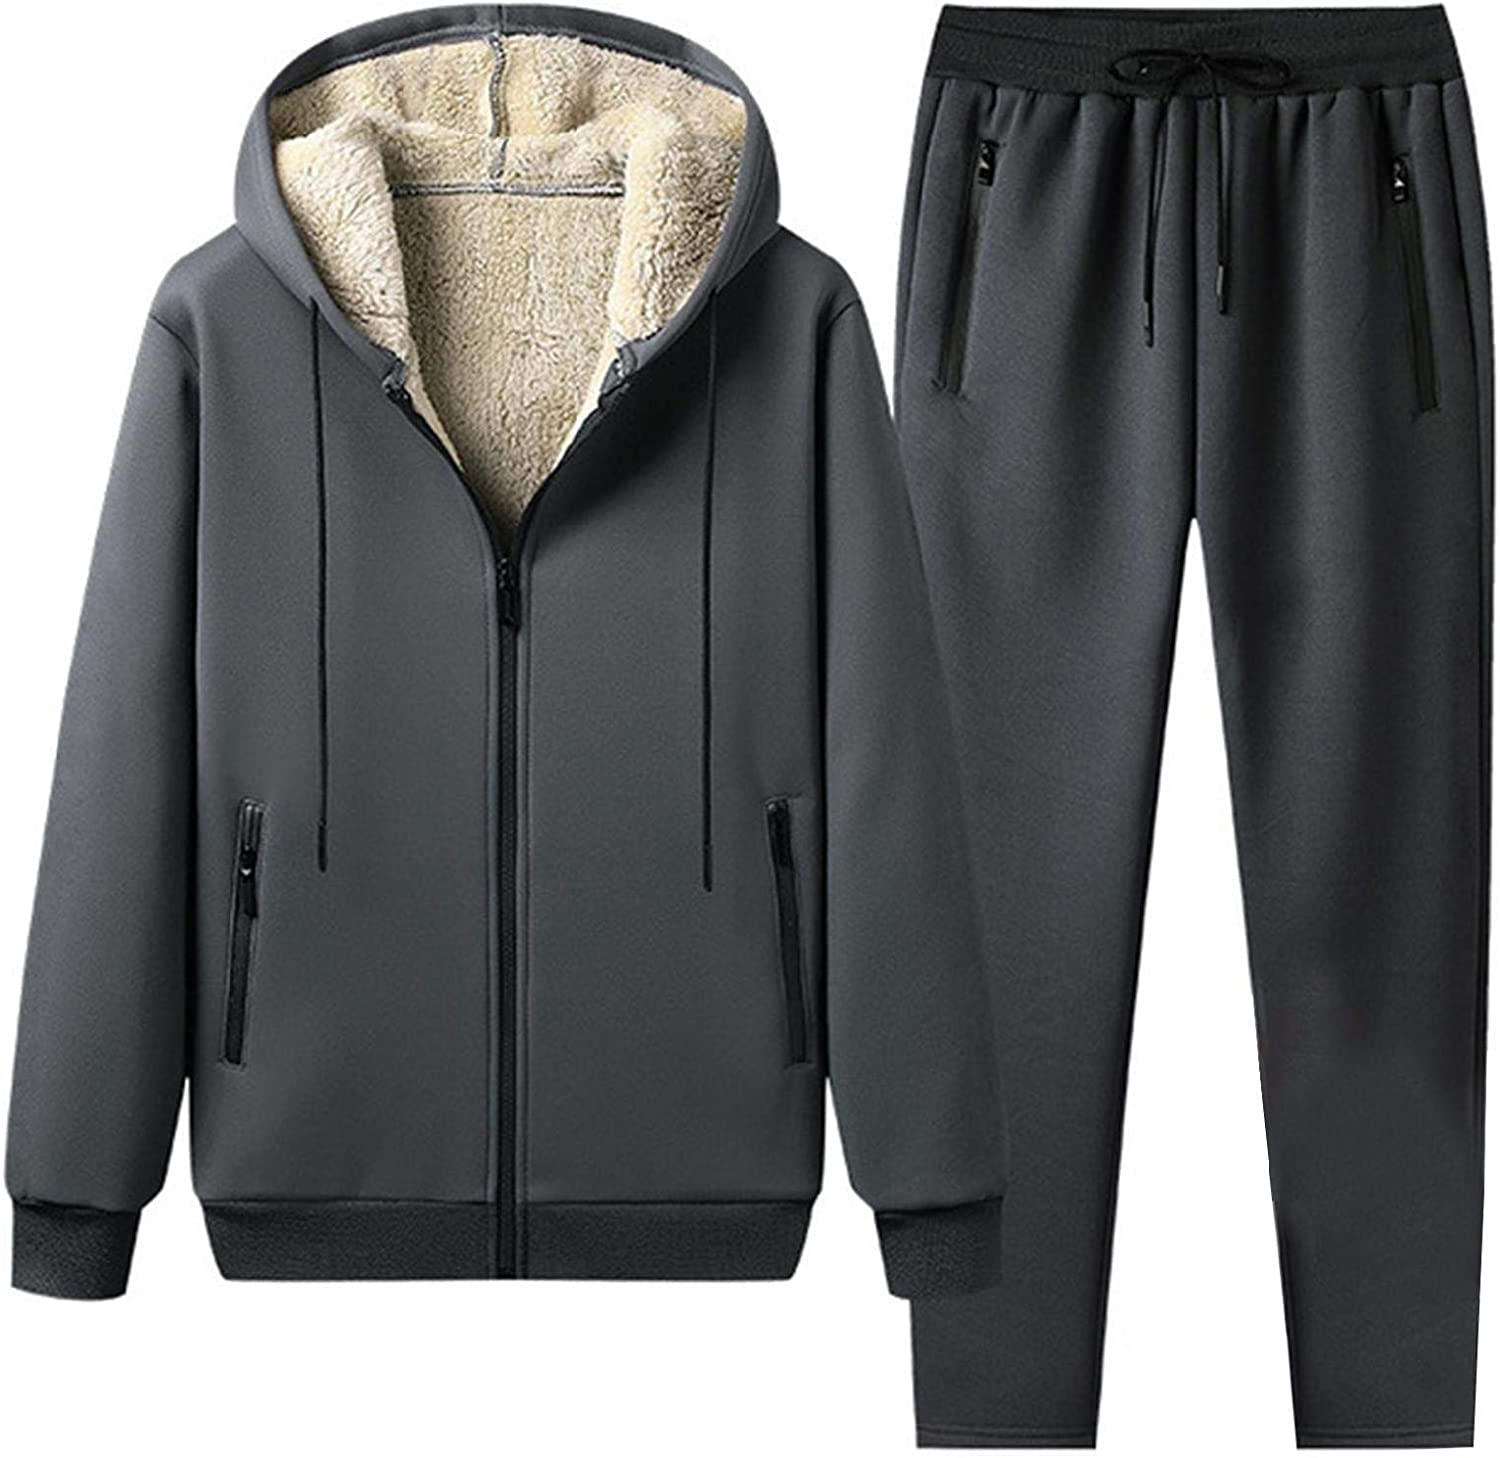 Men's Popular standard Casual Tracksuit Winter Warm Jogging Suit Running At Sweat Reservation